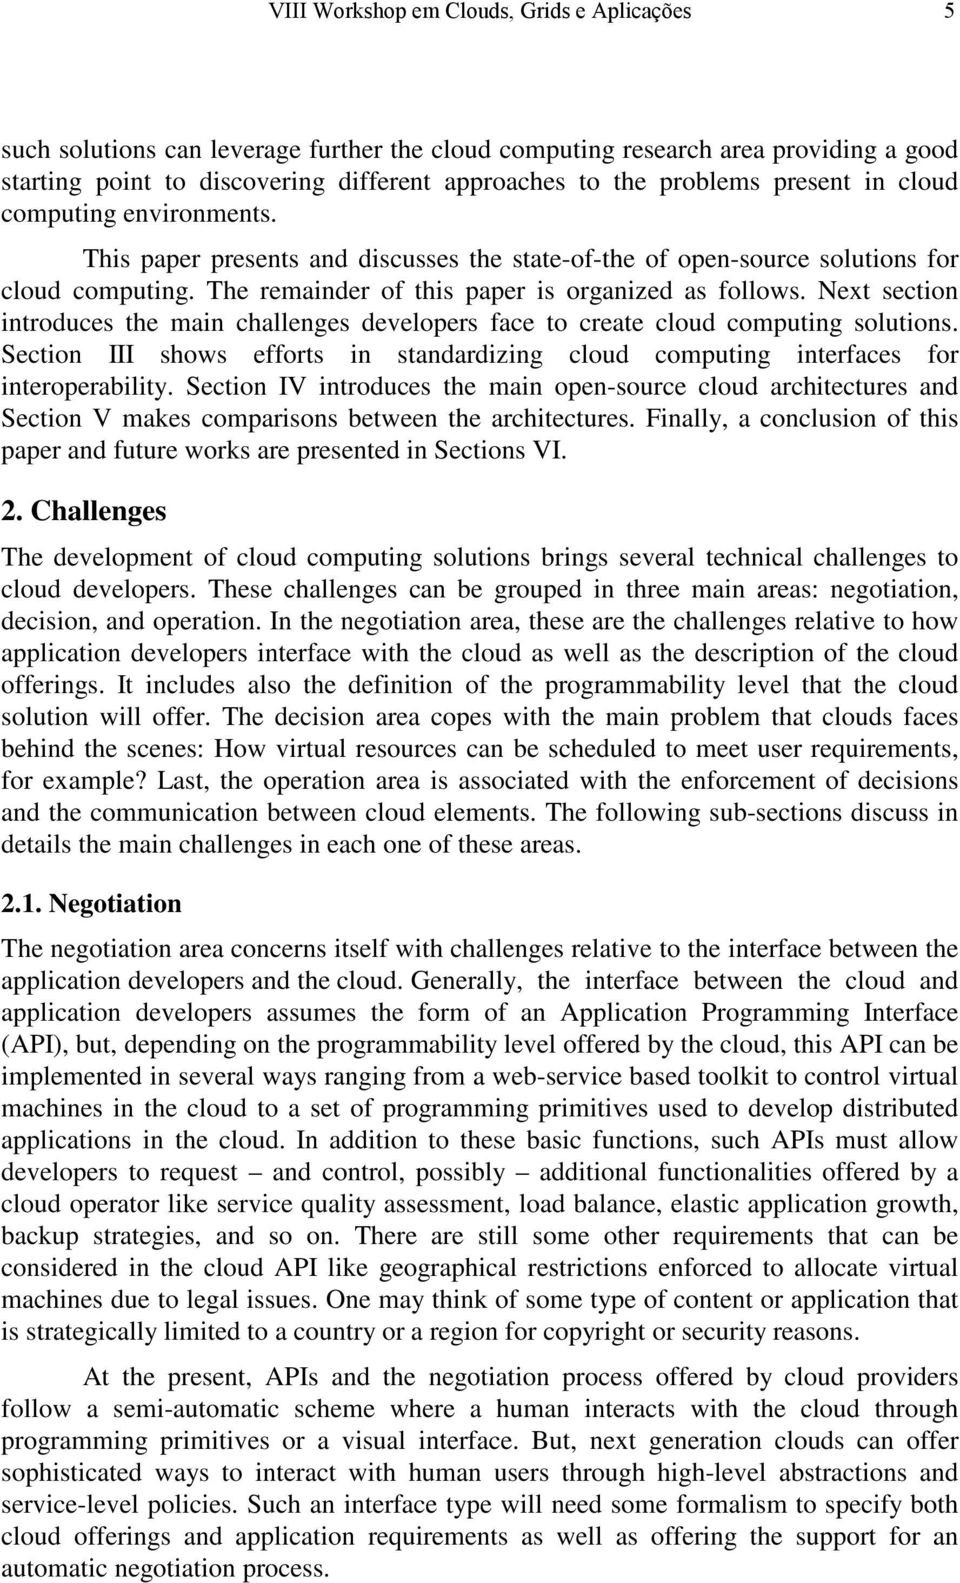 Next section introduces the main challenges developers face to create cloud computing solutions. Section III shows efforts in standardizing cloud computing interfaces for interoperability.